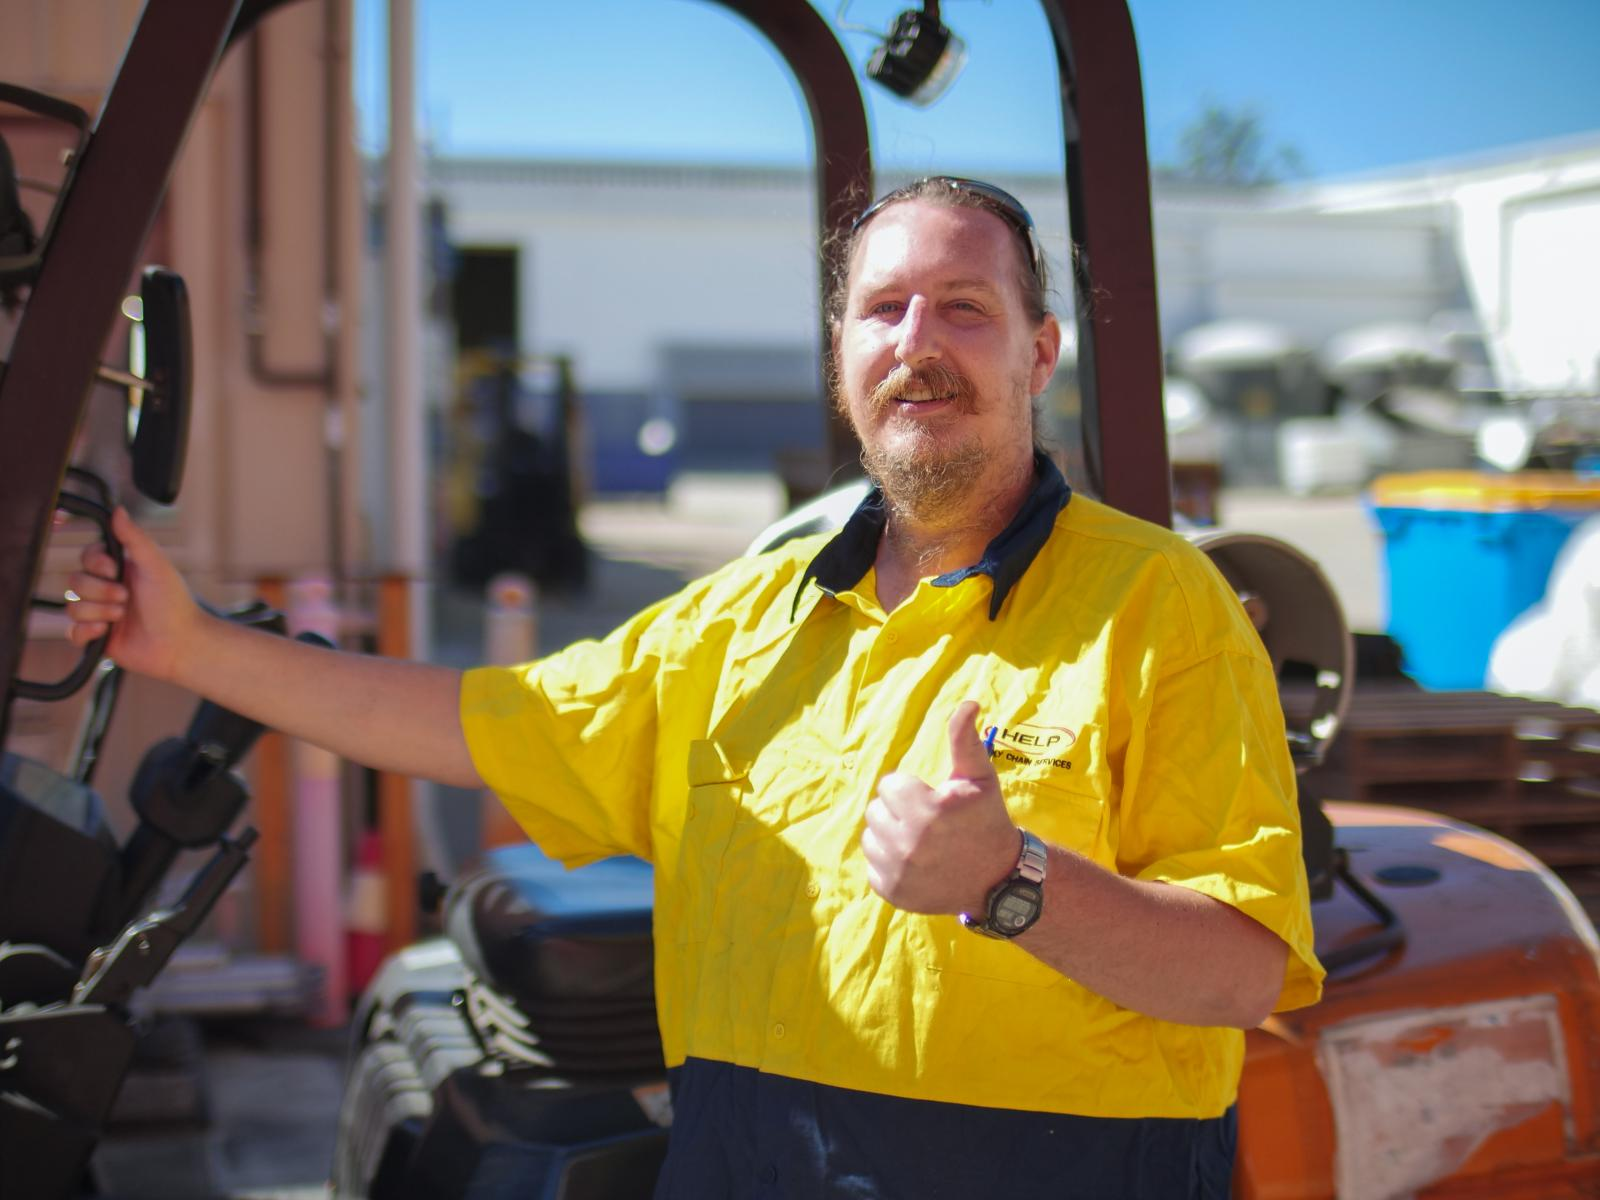 A young man in his 30's is wearing a neon yellow polo shirt standing in front of a forklift giving the thumbs up.